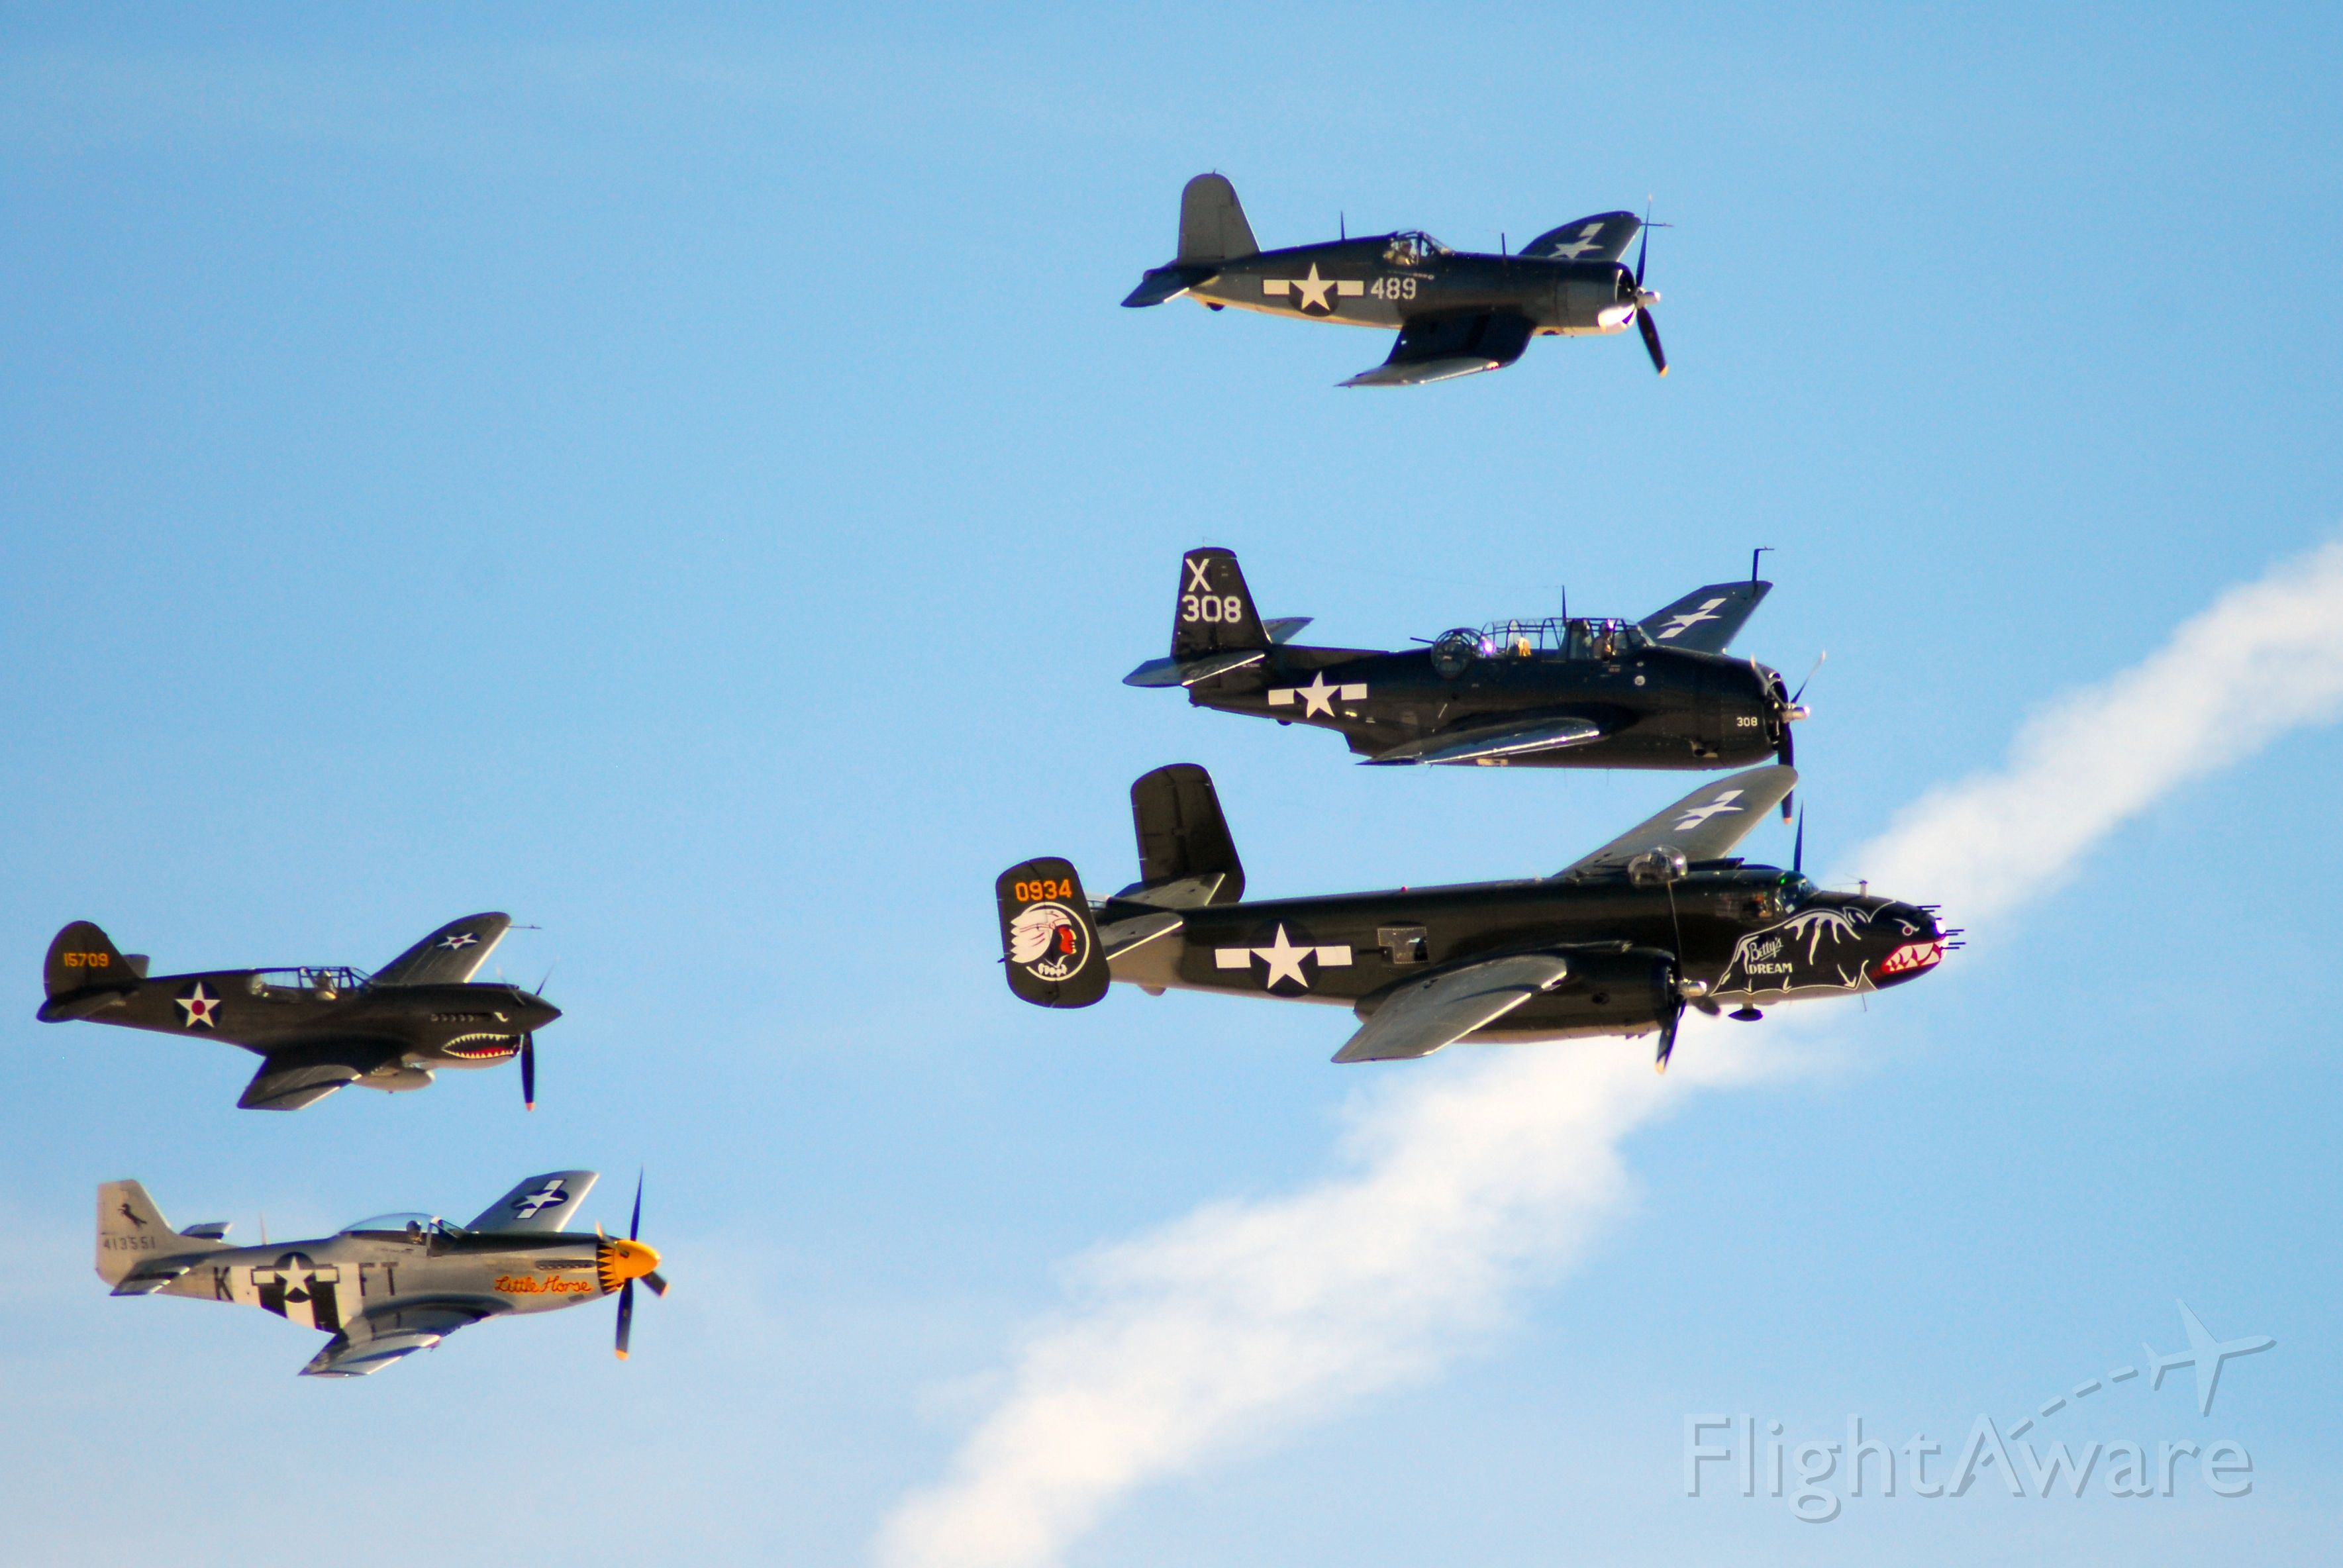 — — - Aviation Nation 2017 - Texas Flying Legends<br />From bottom to top:<br /><br />P-51 Mustang<br />P-40 Warhawk<br />B-25 Mitchell<br />TBM-3E Avenger<br />F4U (FG-1D) Corsair